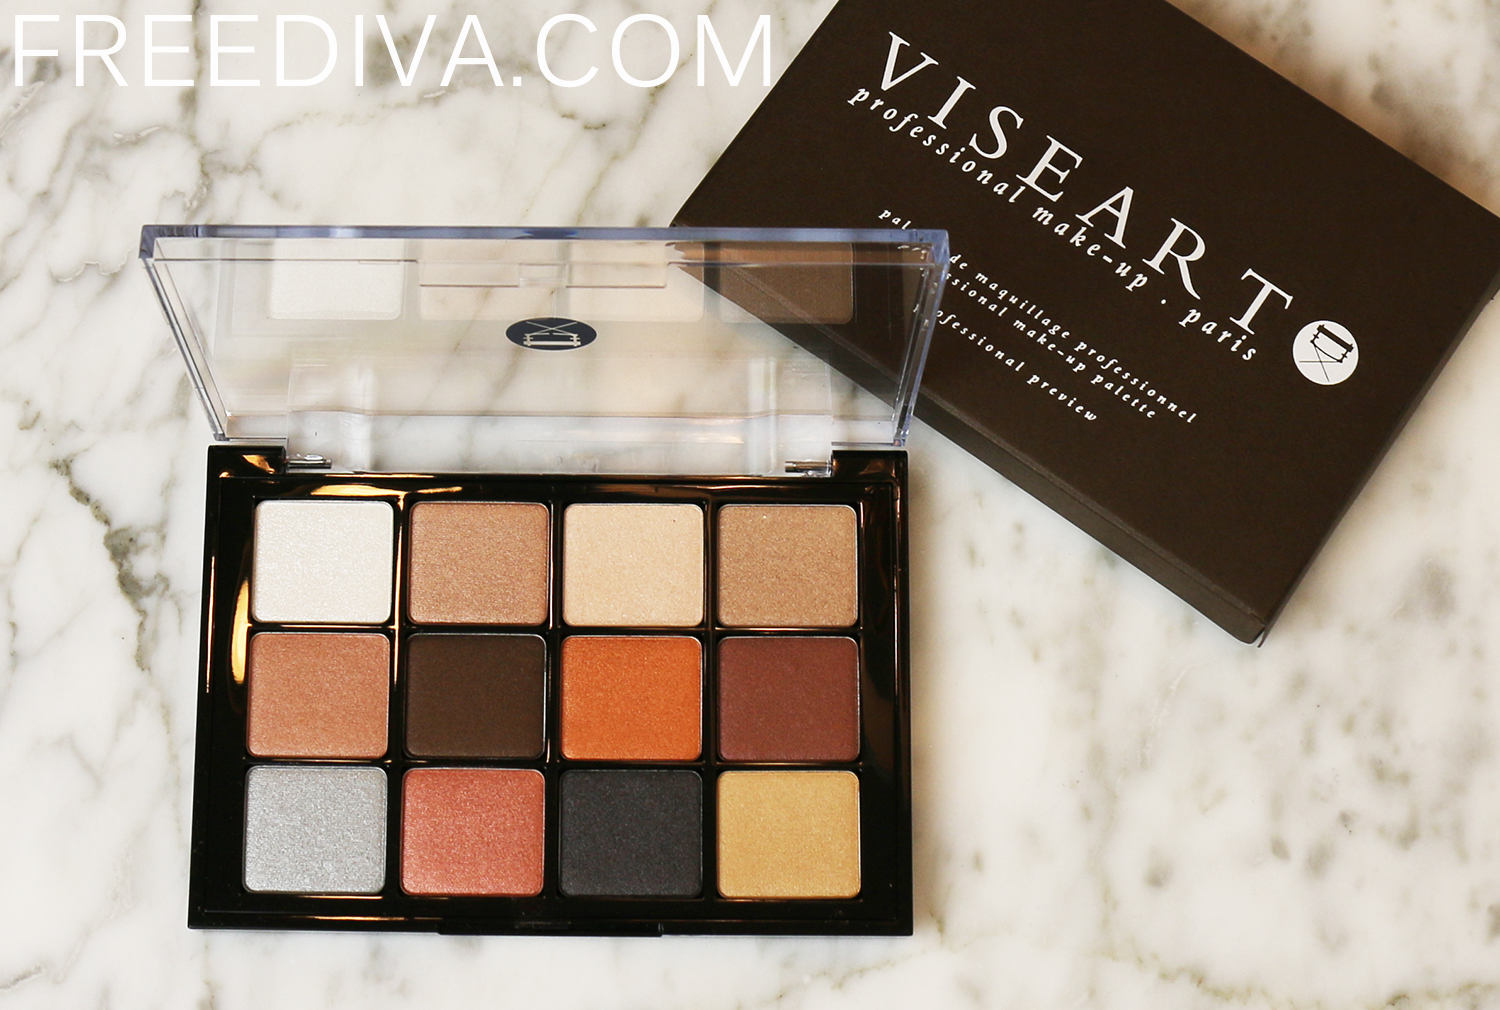 Viseart Eyeshadow Palette 05 Sultry Muse